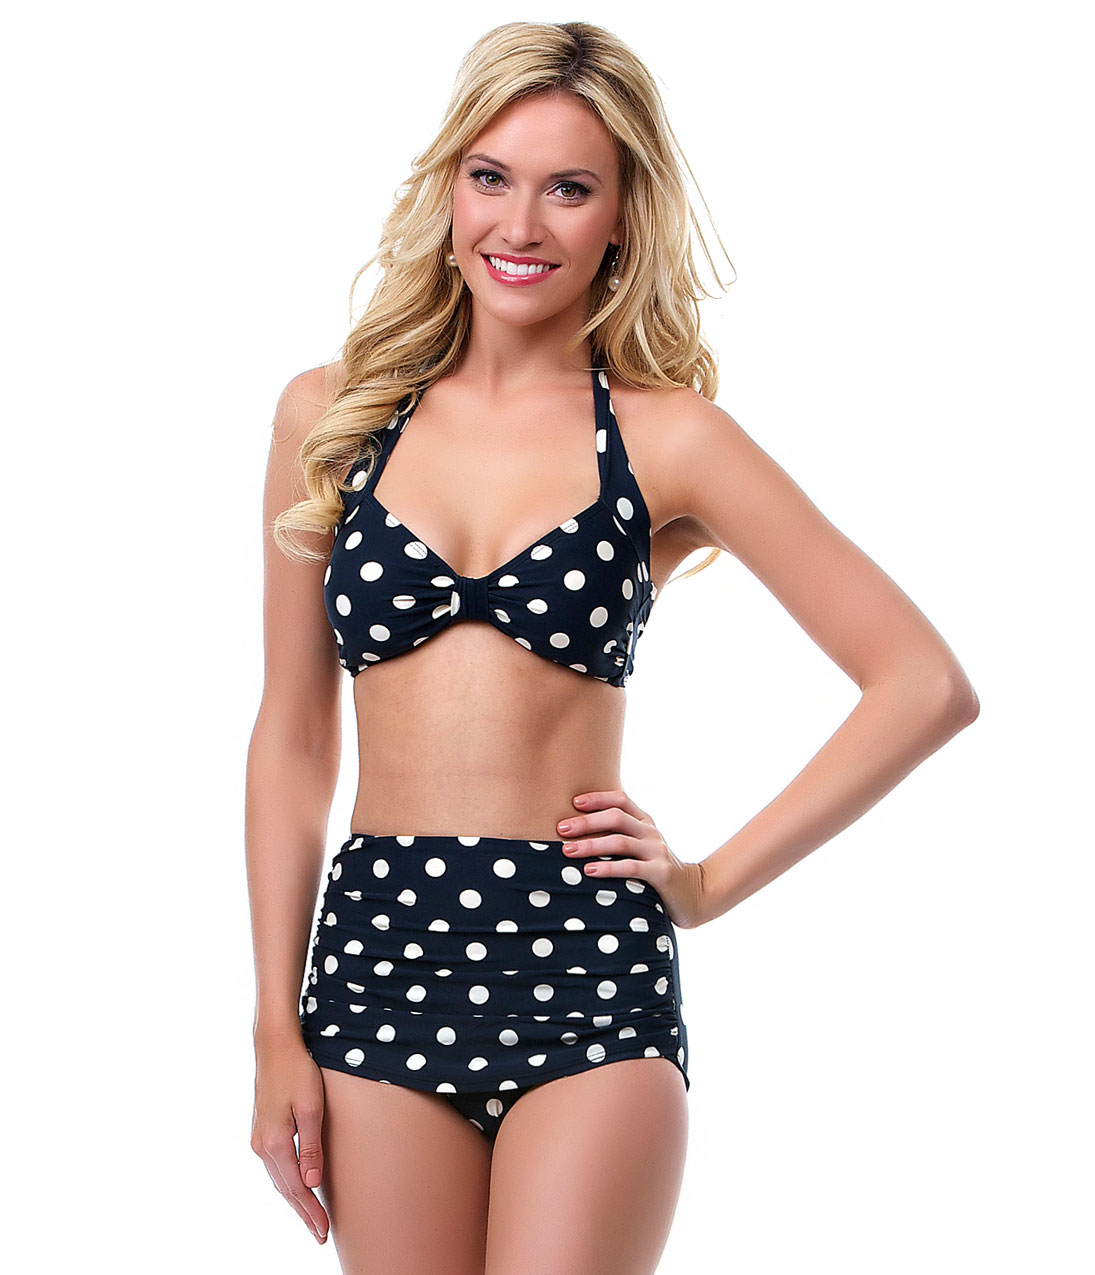 BEST SELLER! Vintage Inspired Swimsuit 1950s Style Black Polka Dot Two Piece Swimsuit - Unique Vintage - Prom dresses, retro dresses, retro swimsuits.